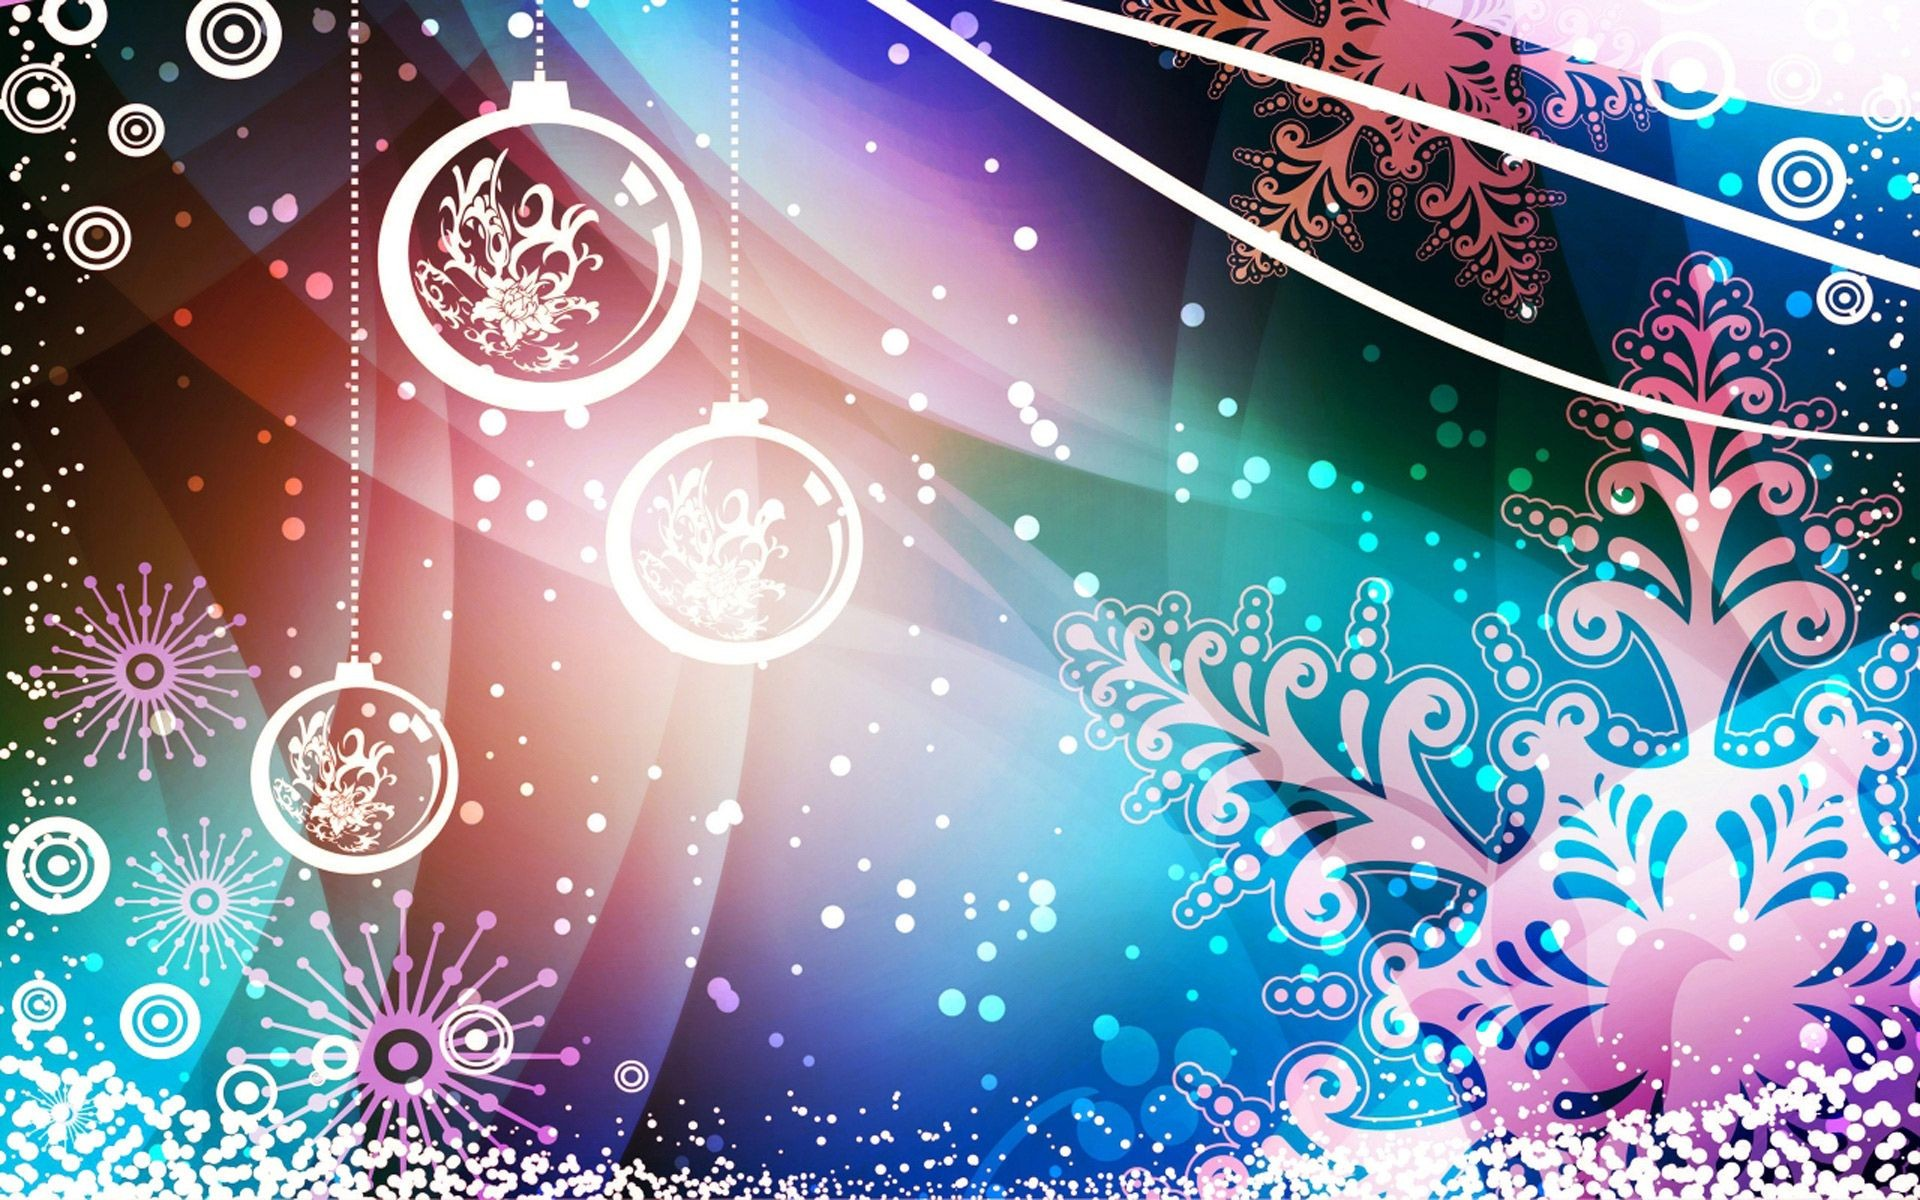 Astonishing Christmas Backgrounds For Computer 58 Pictures Home Interior And Landscaping Eliaenasavecom